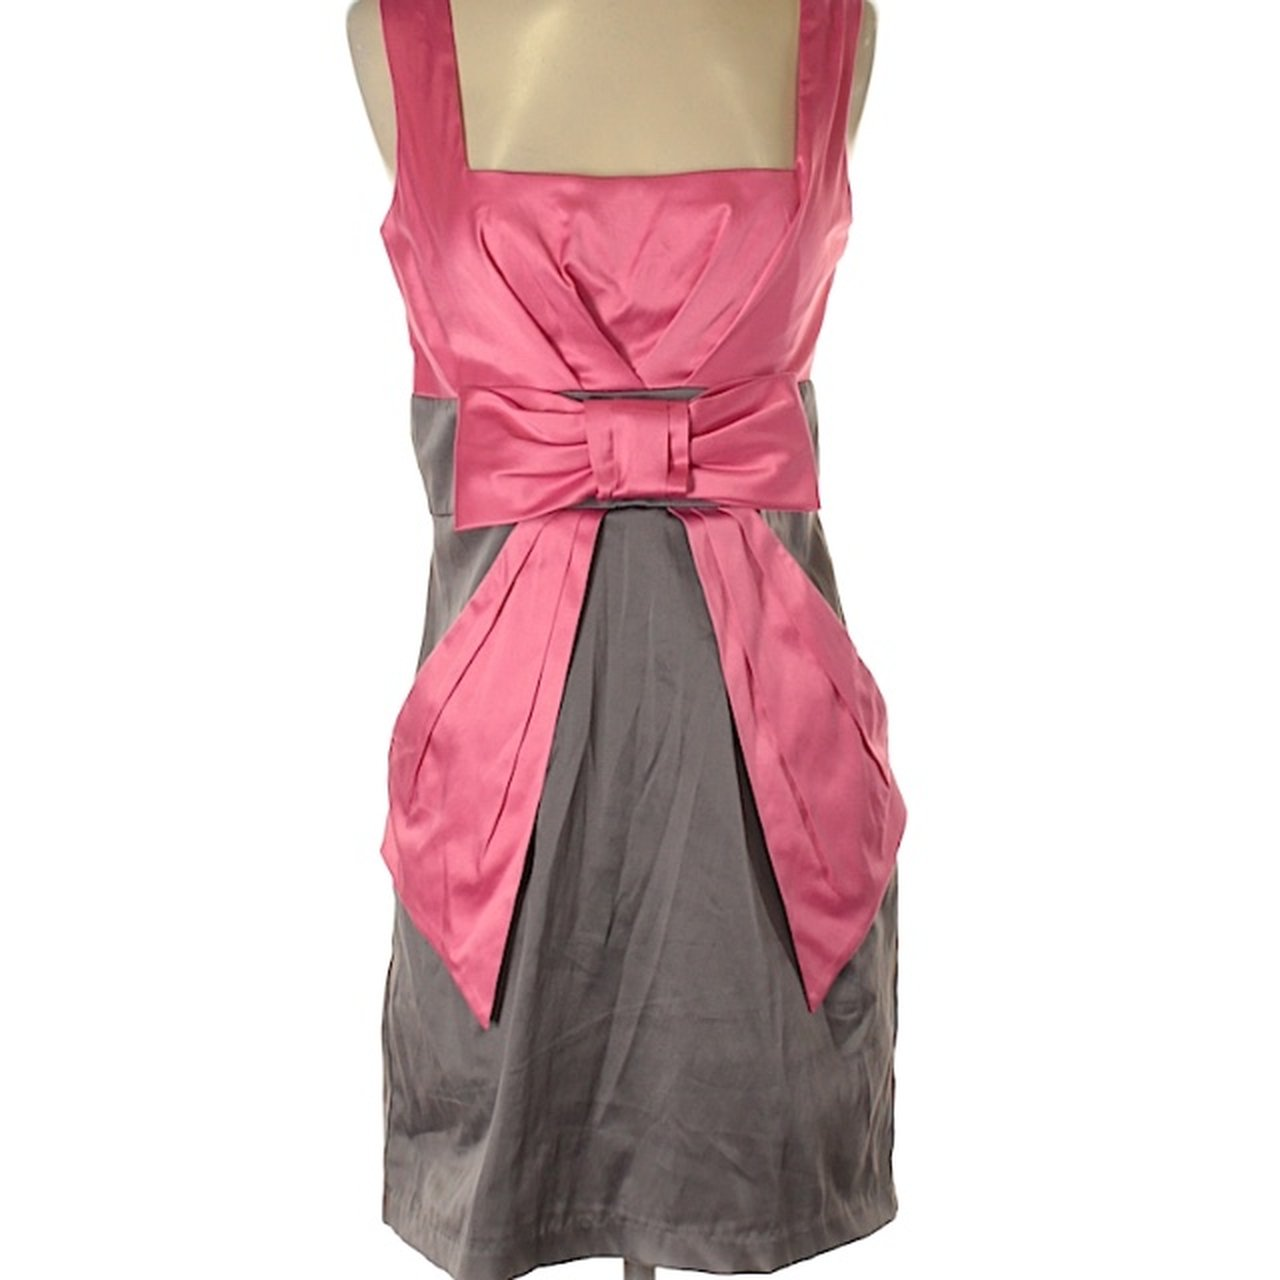 1a4961c194c Gorgeous Pink   Pewter Dress! Perfect for an evening dress